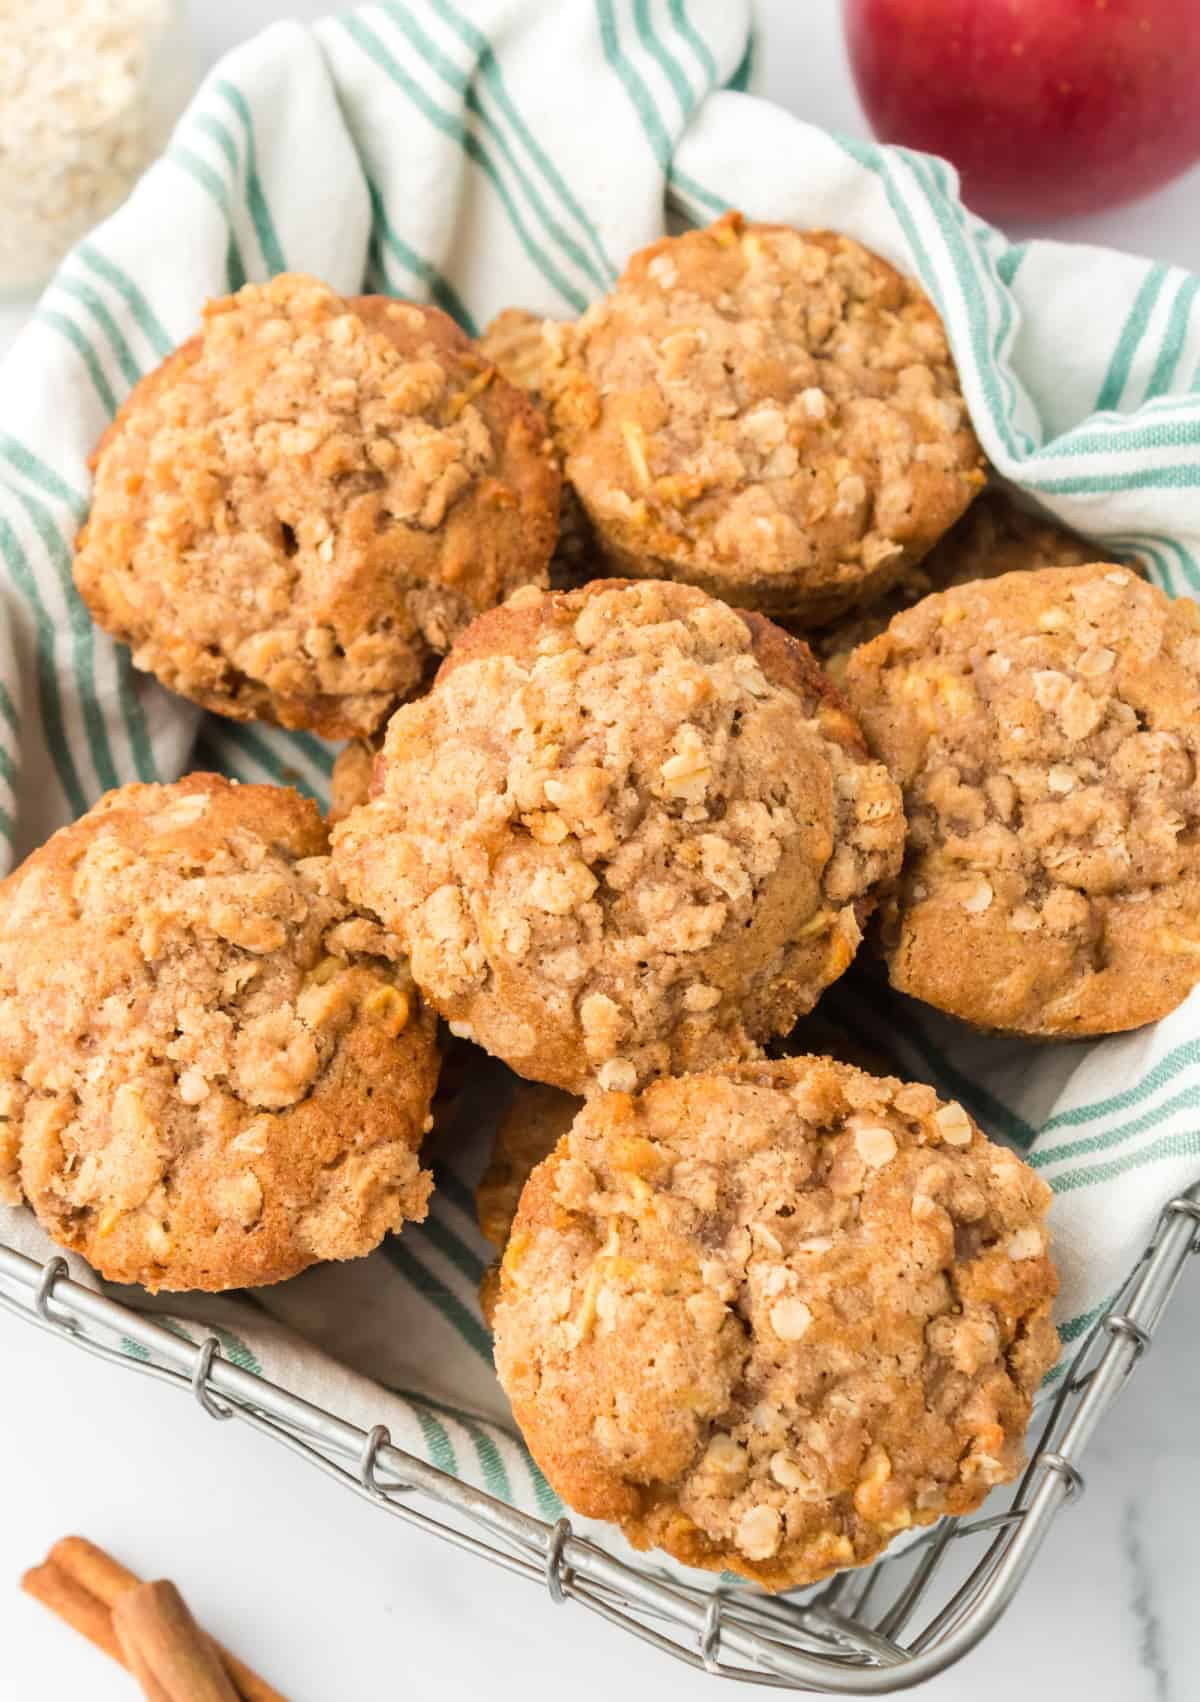 A pile of apple cinnamon muffins in a basket.